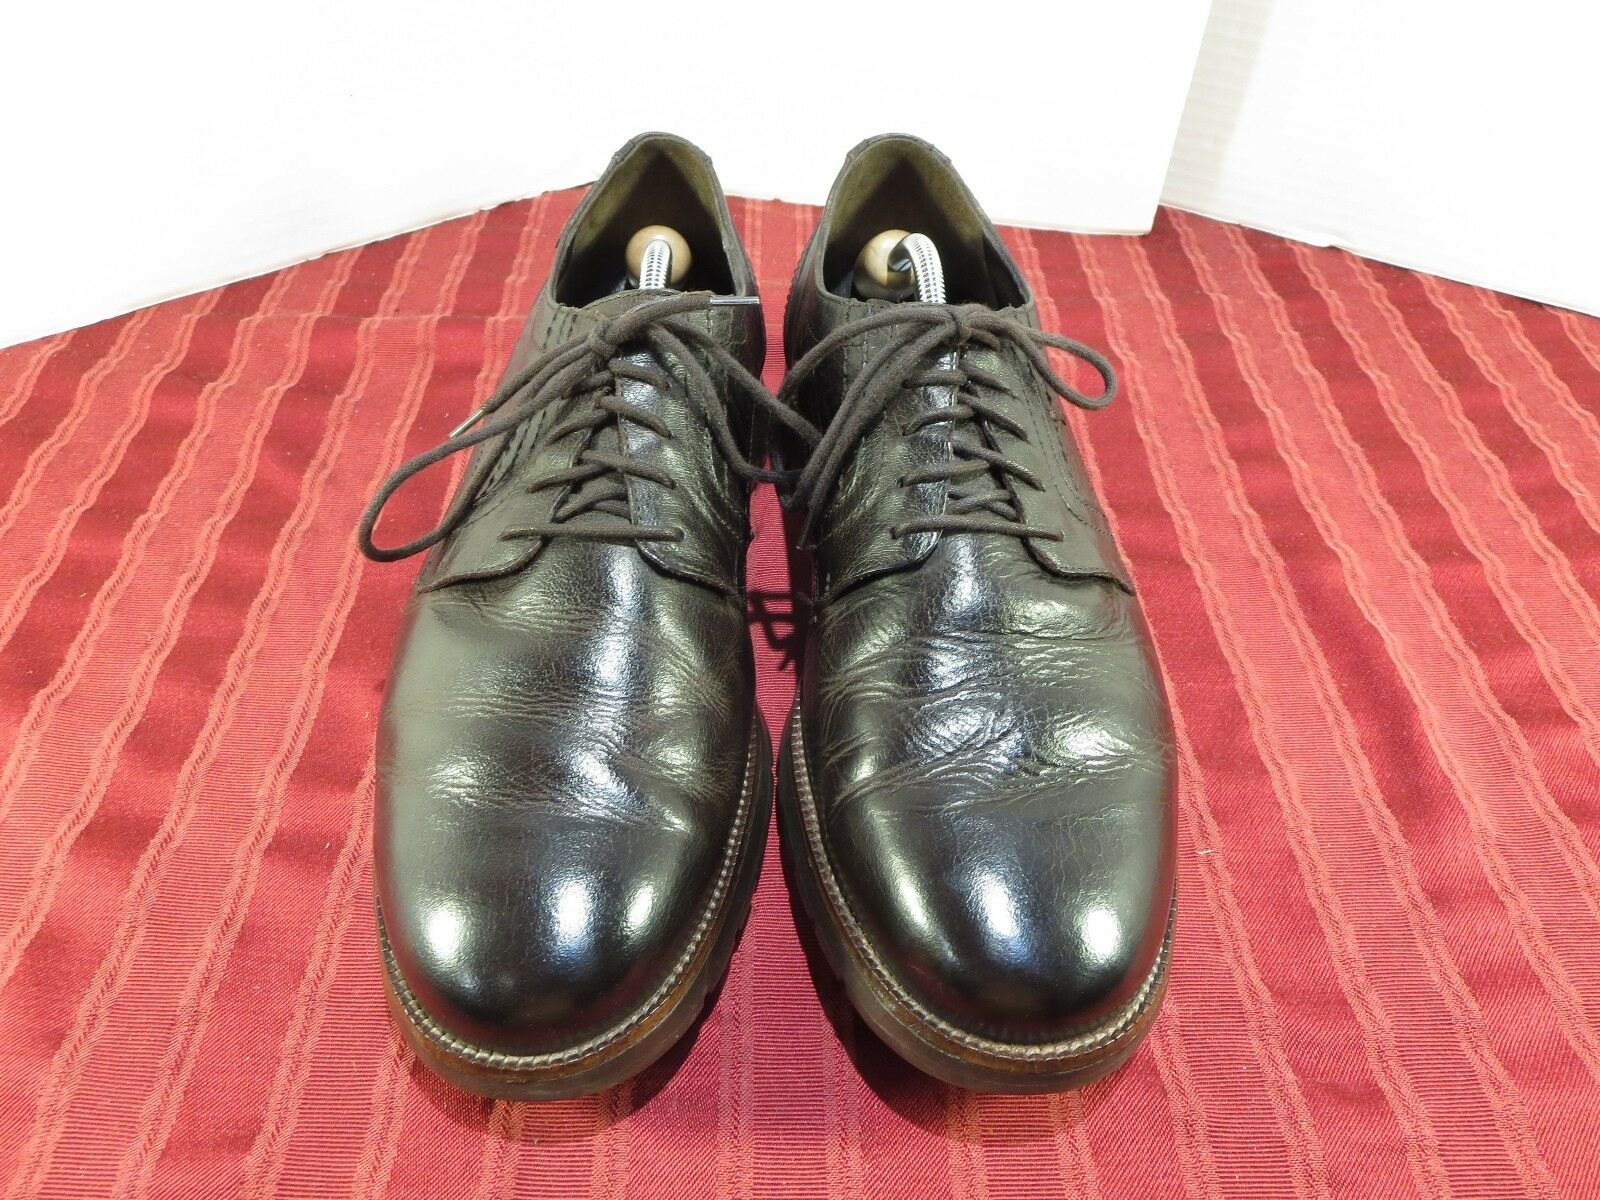 Mephisto City Hiker Comfort Casual Brown Leather Oxford shoes Men Size 12